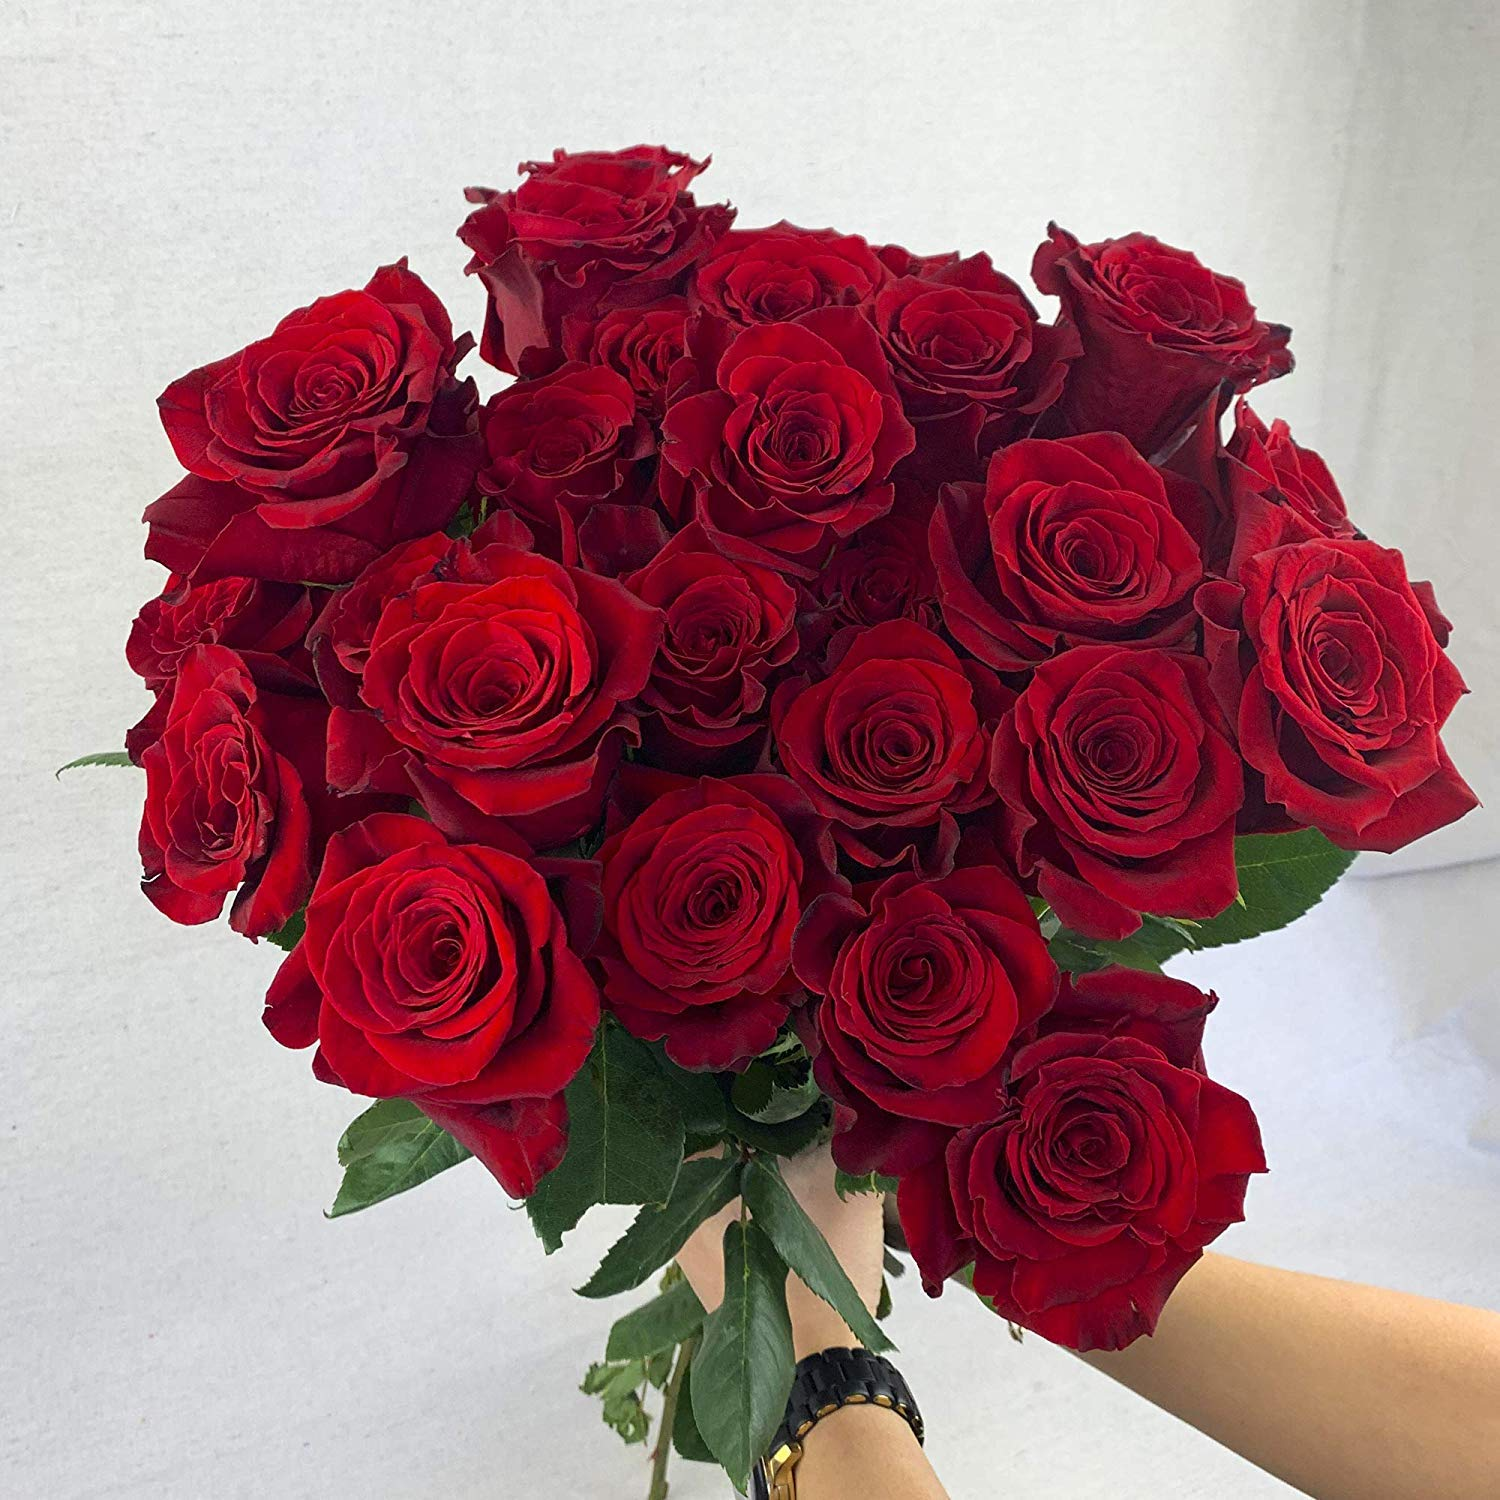 Green Choice Flowers - 36 (3 Dozen) Premium Red Fresh Roses with 20 inch Long Stem Farm Fresh Flowers Beautiful Red Rose Flower Cut Per Order Direct from Farm Fast Free Delivery Long Lasting